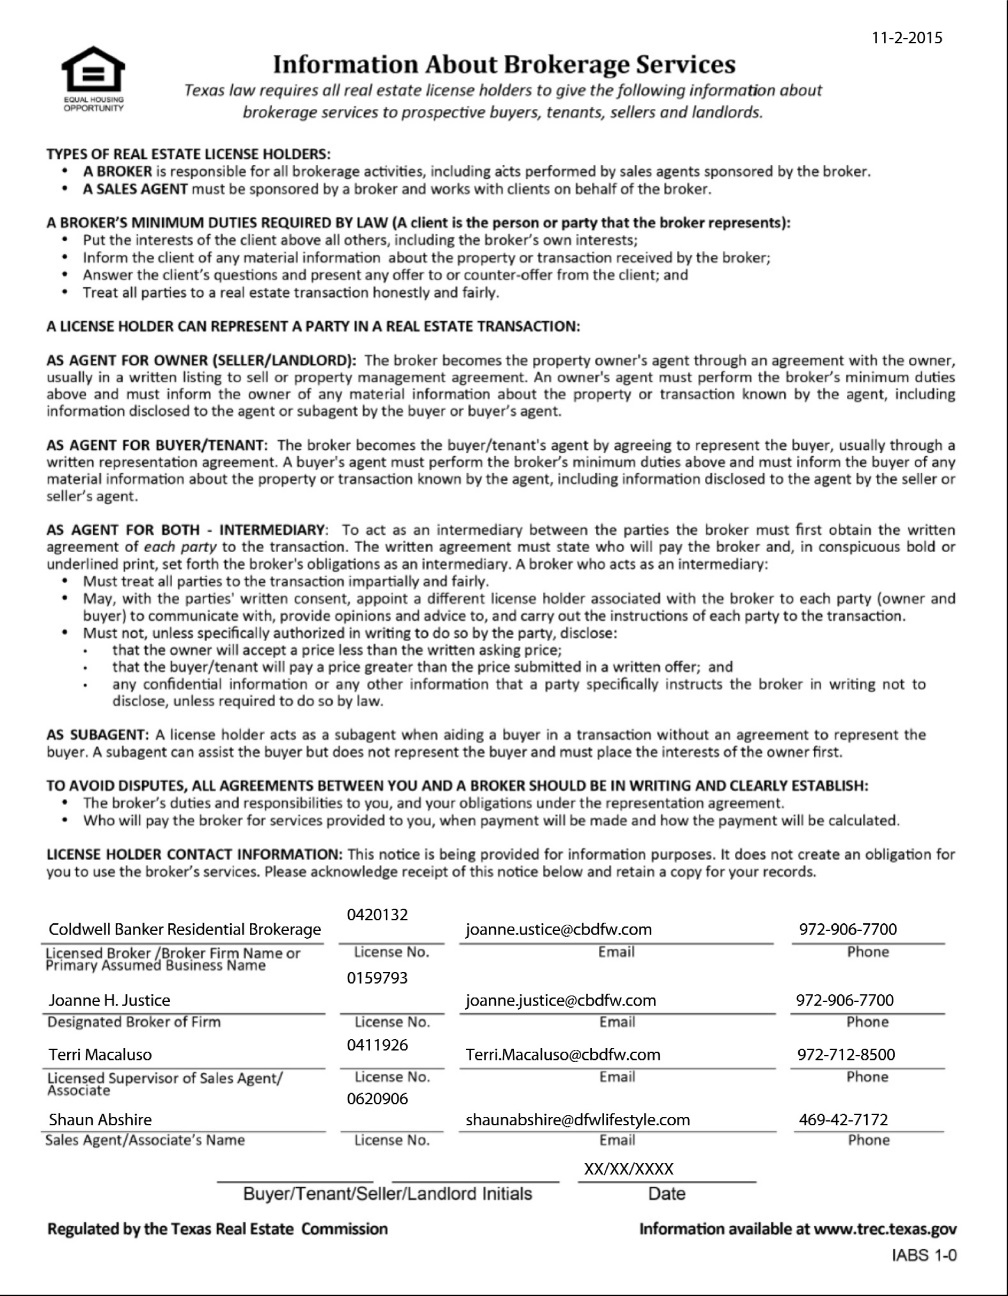 Texas Real Estate Commission (TREC) Information About Brokerage Services Form-157